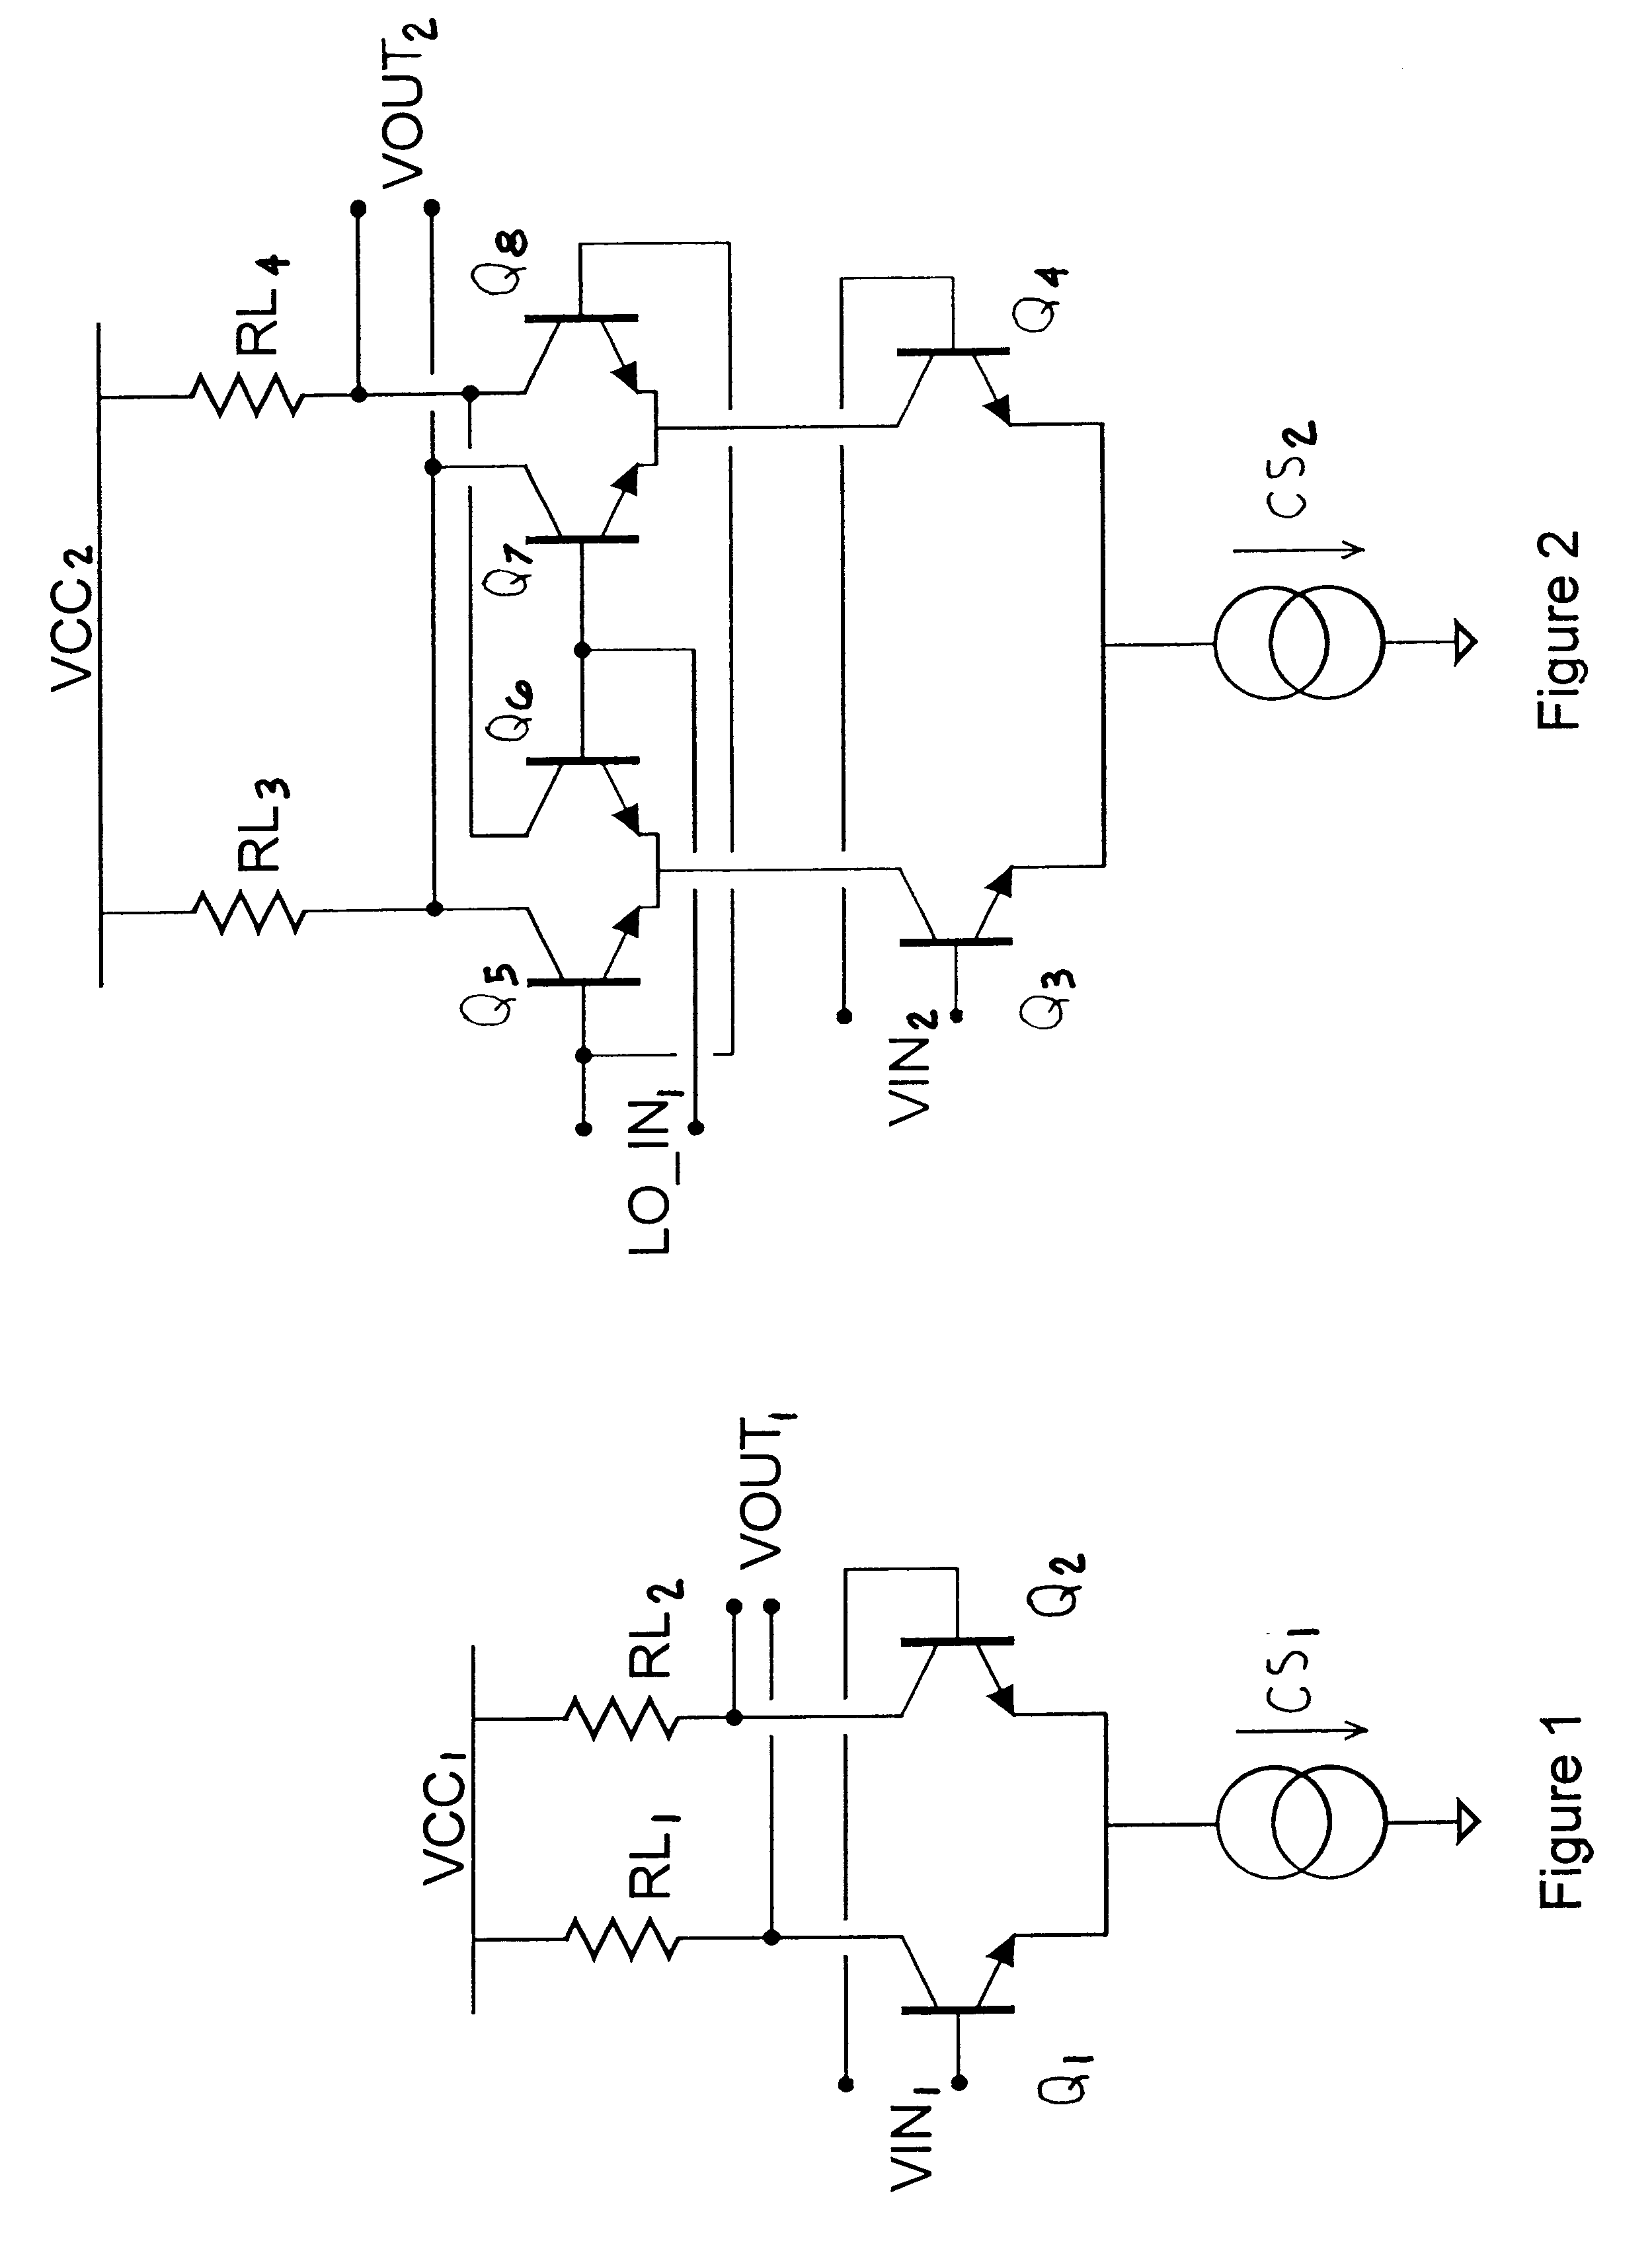 emitter degeneration amplifier